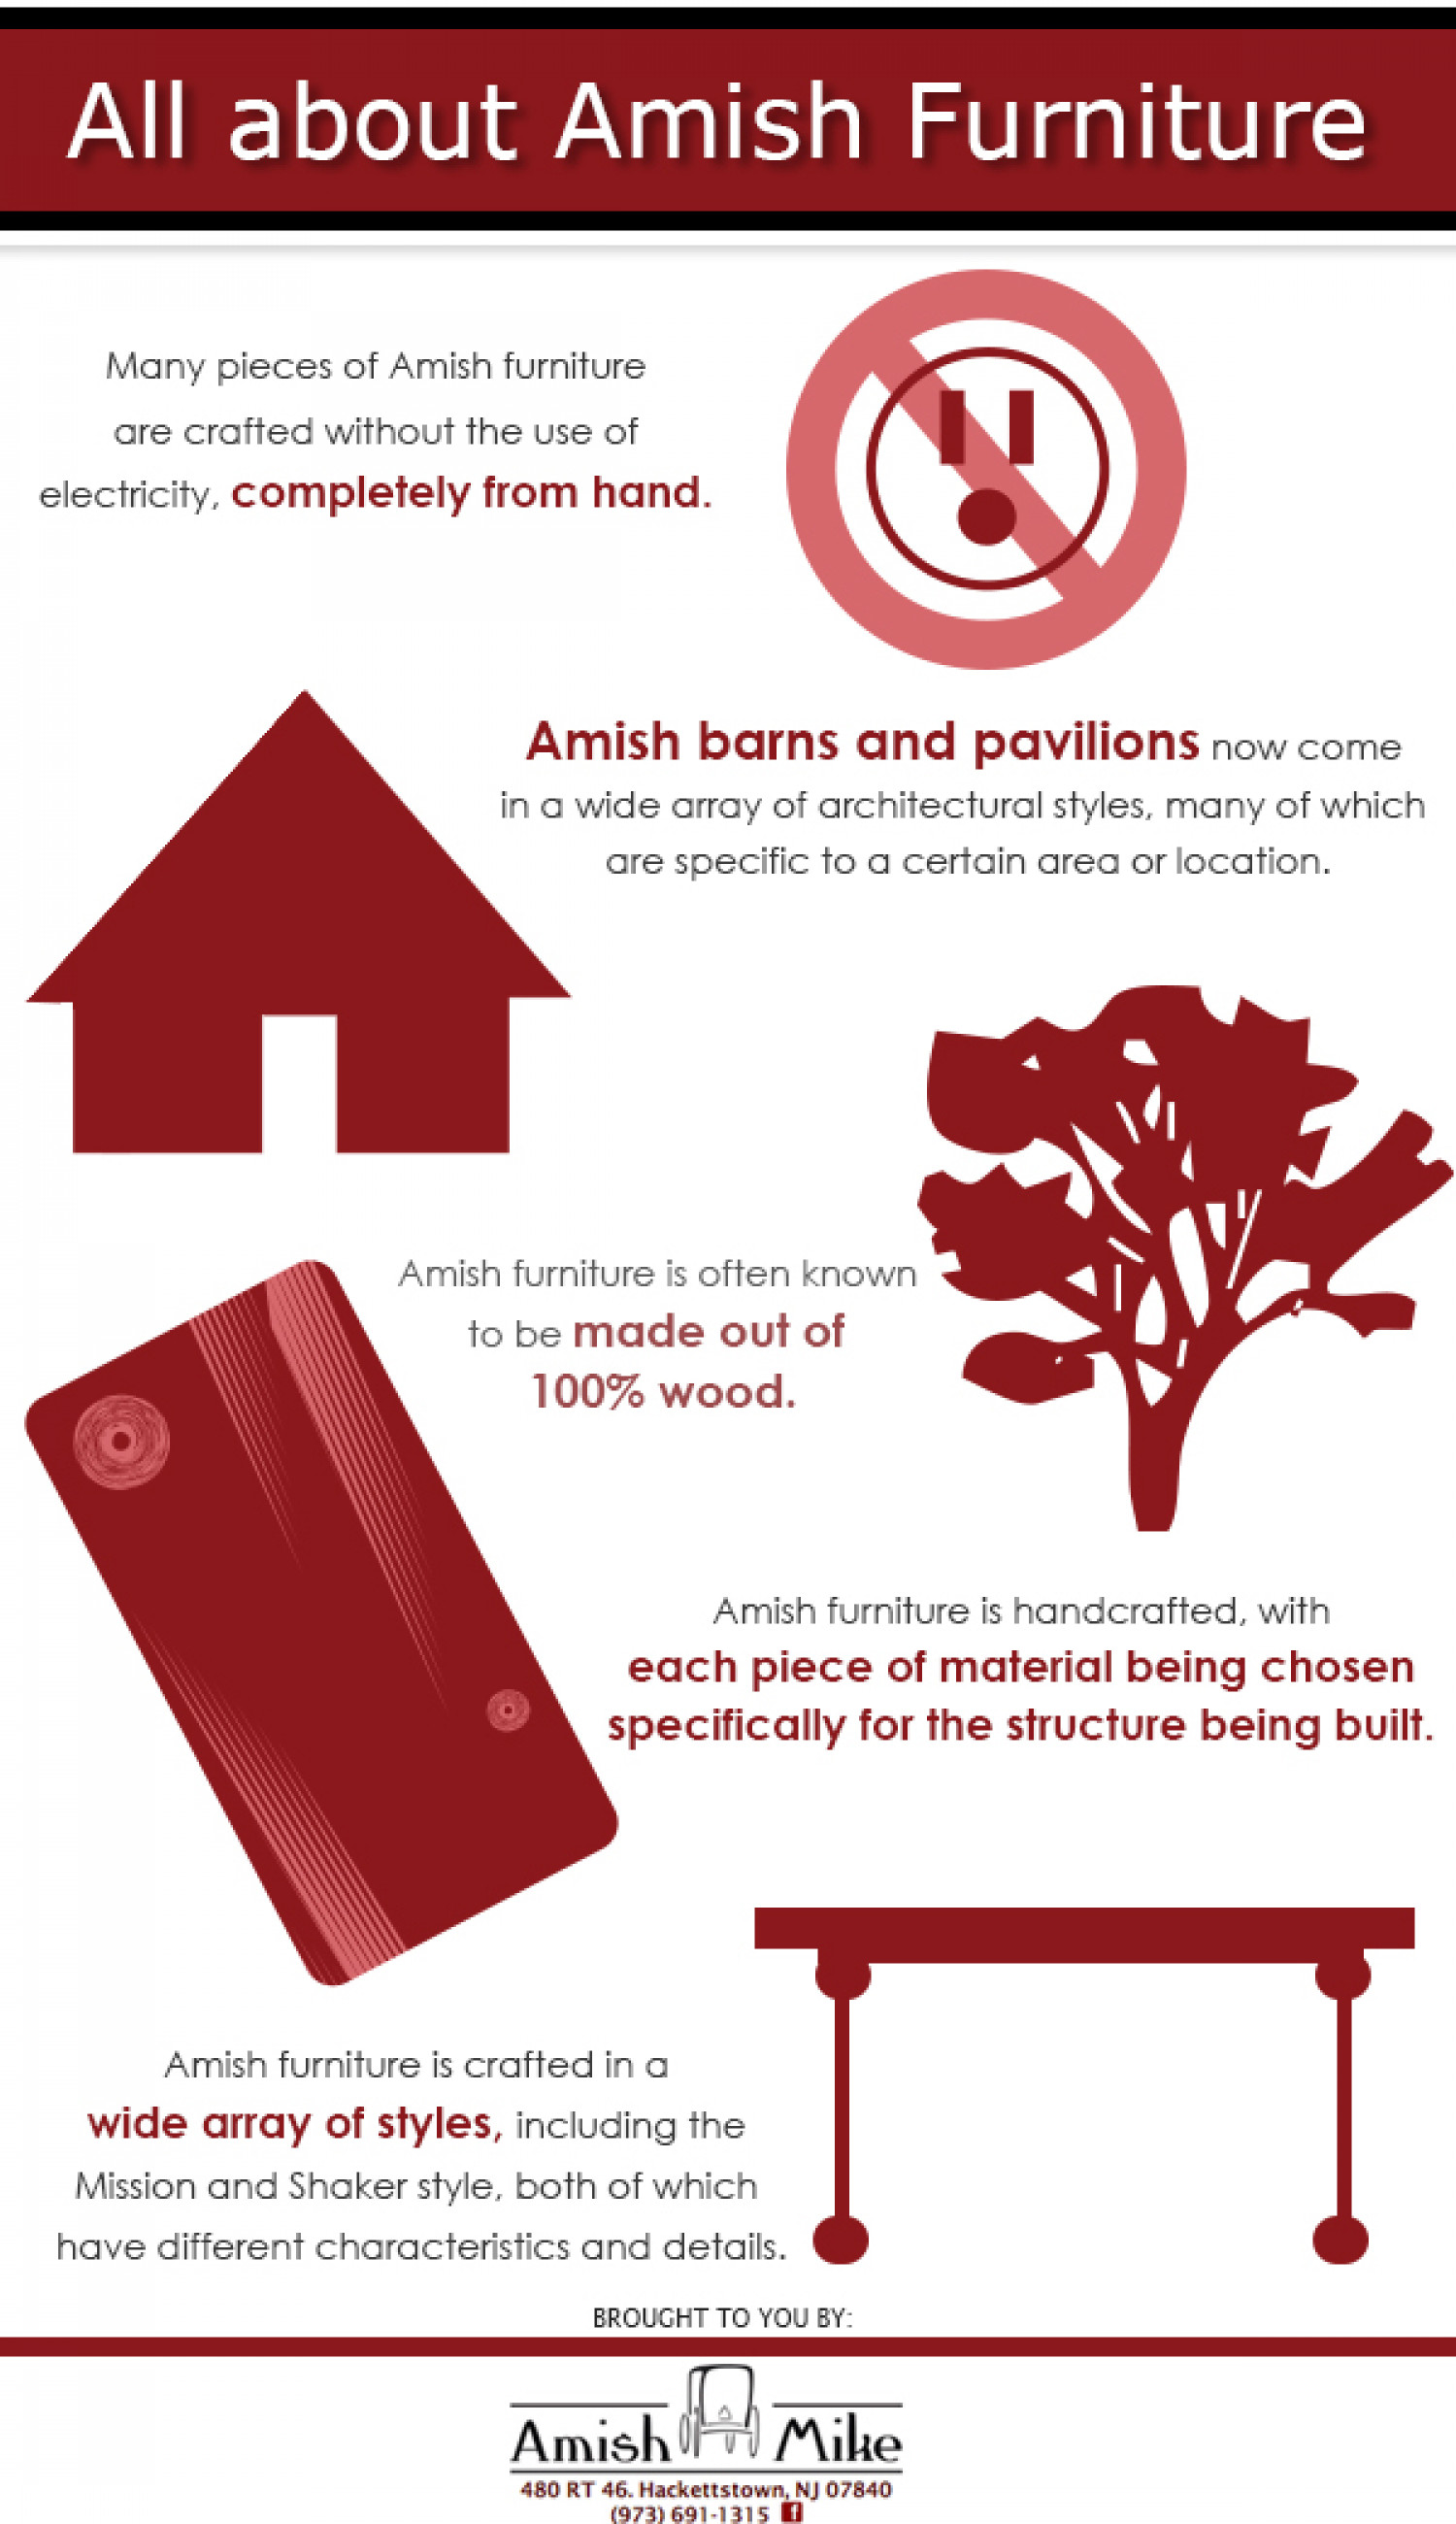 All About Amish Furniture Infographic